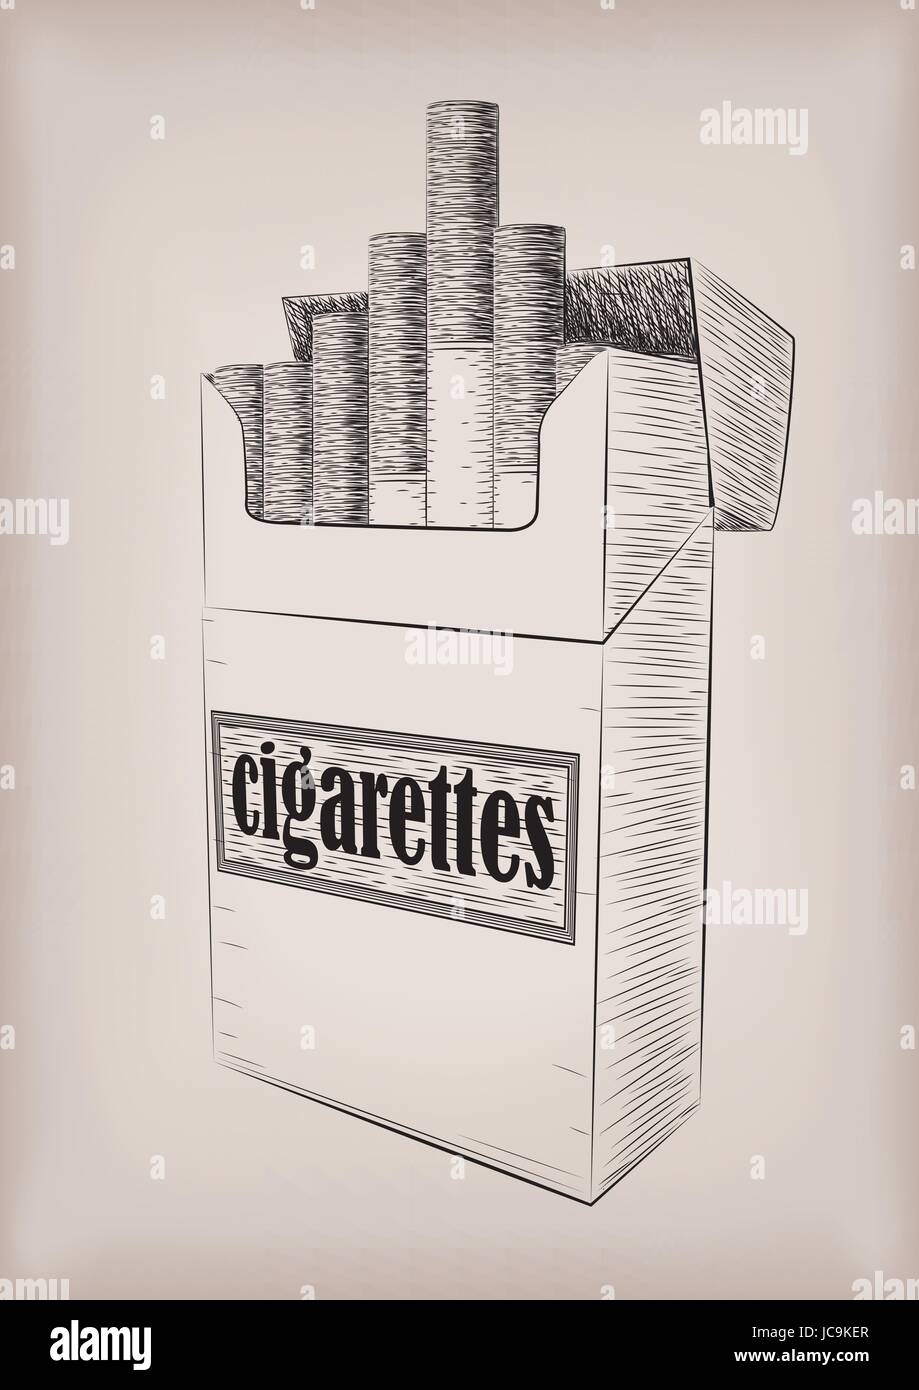 Drawing Vertical Lines In Html : Cigarettes cigarette pack cardboard box full smoking sign